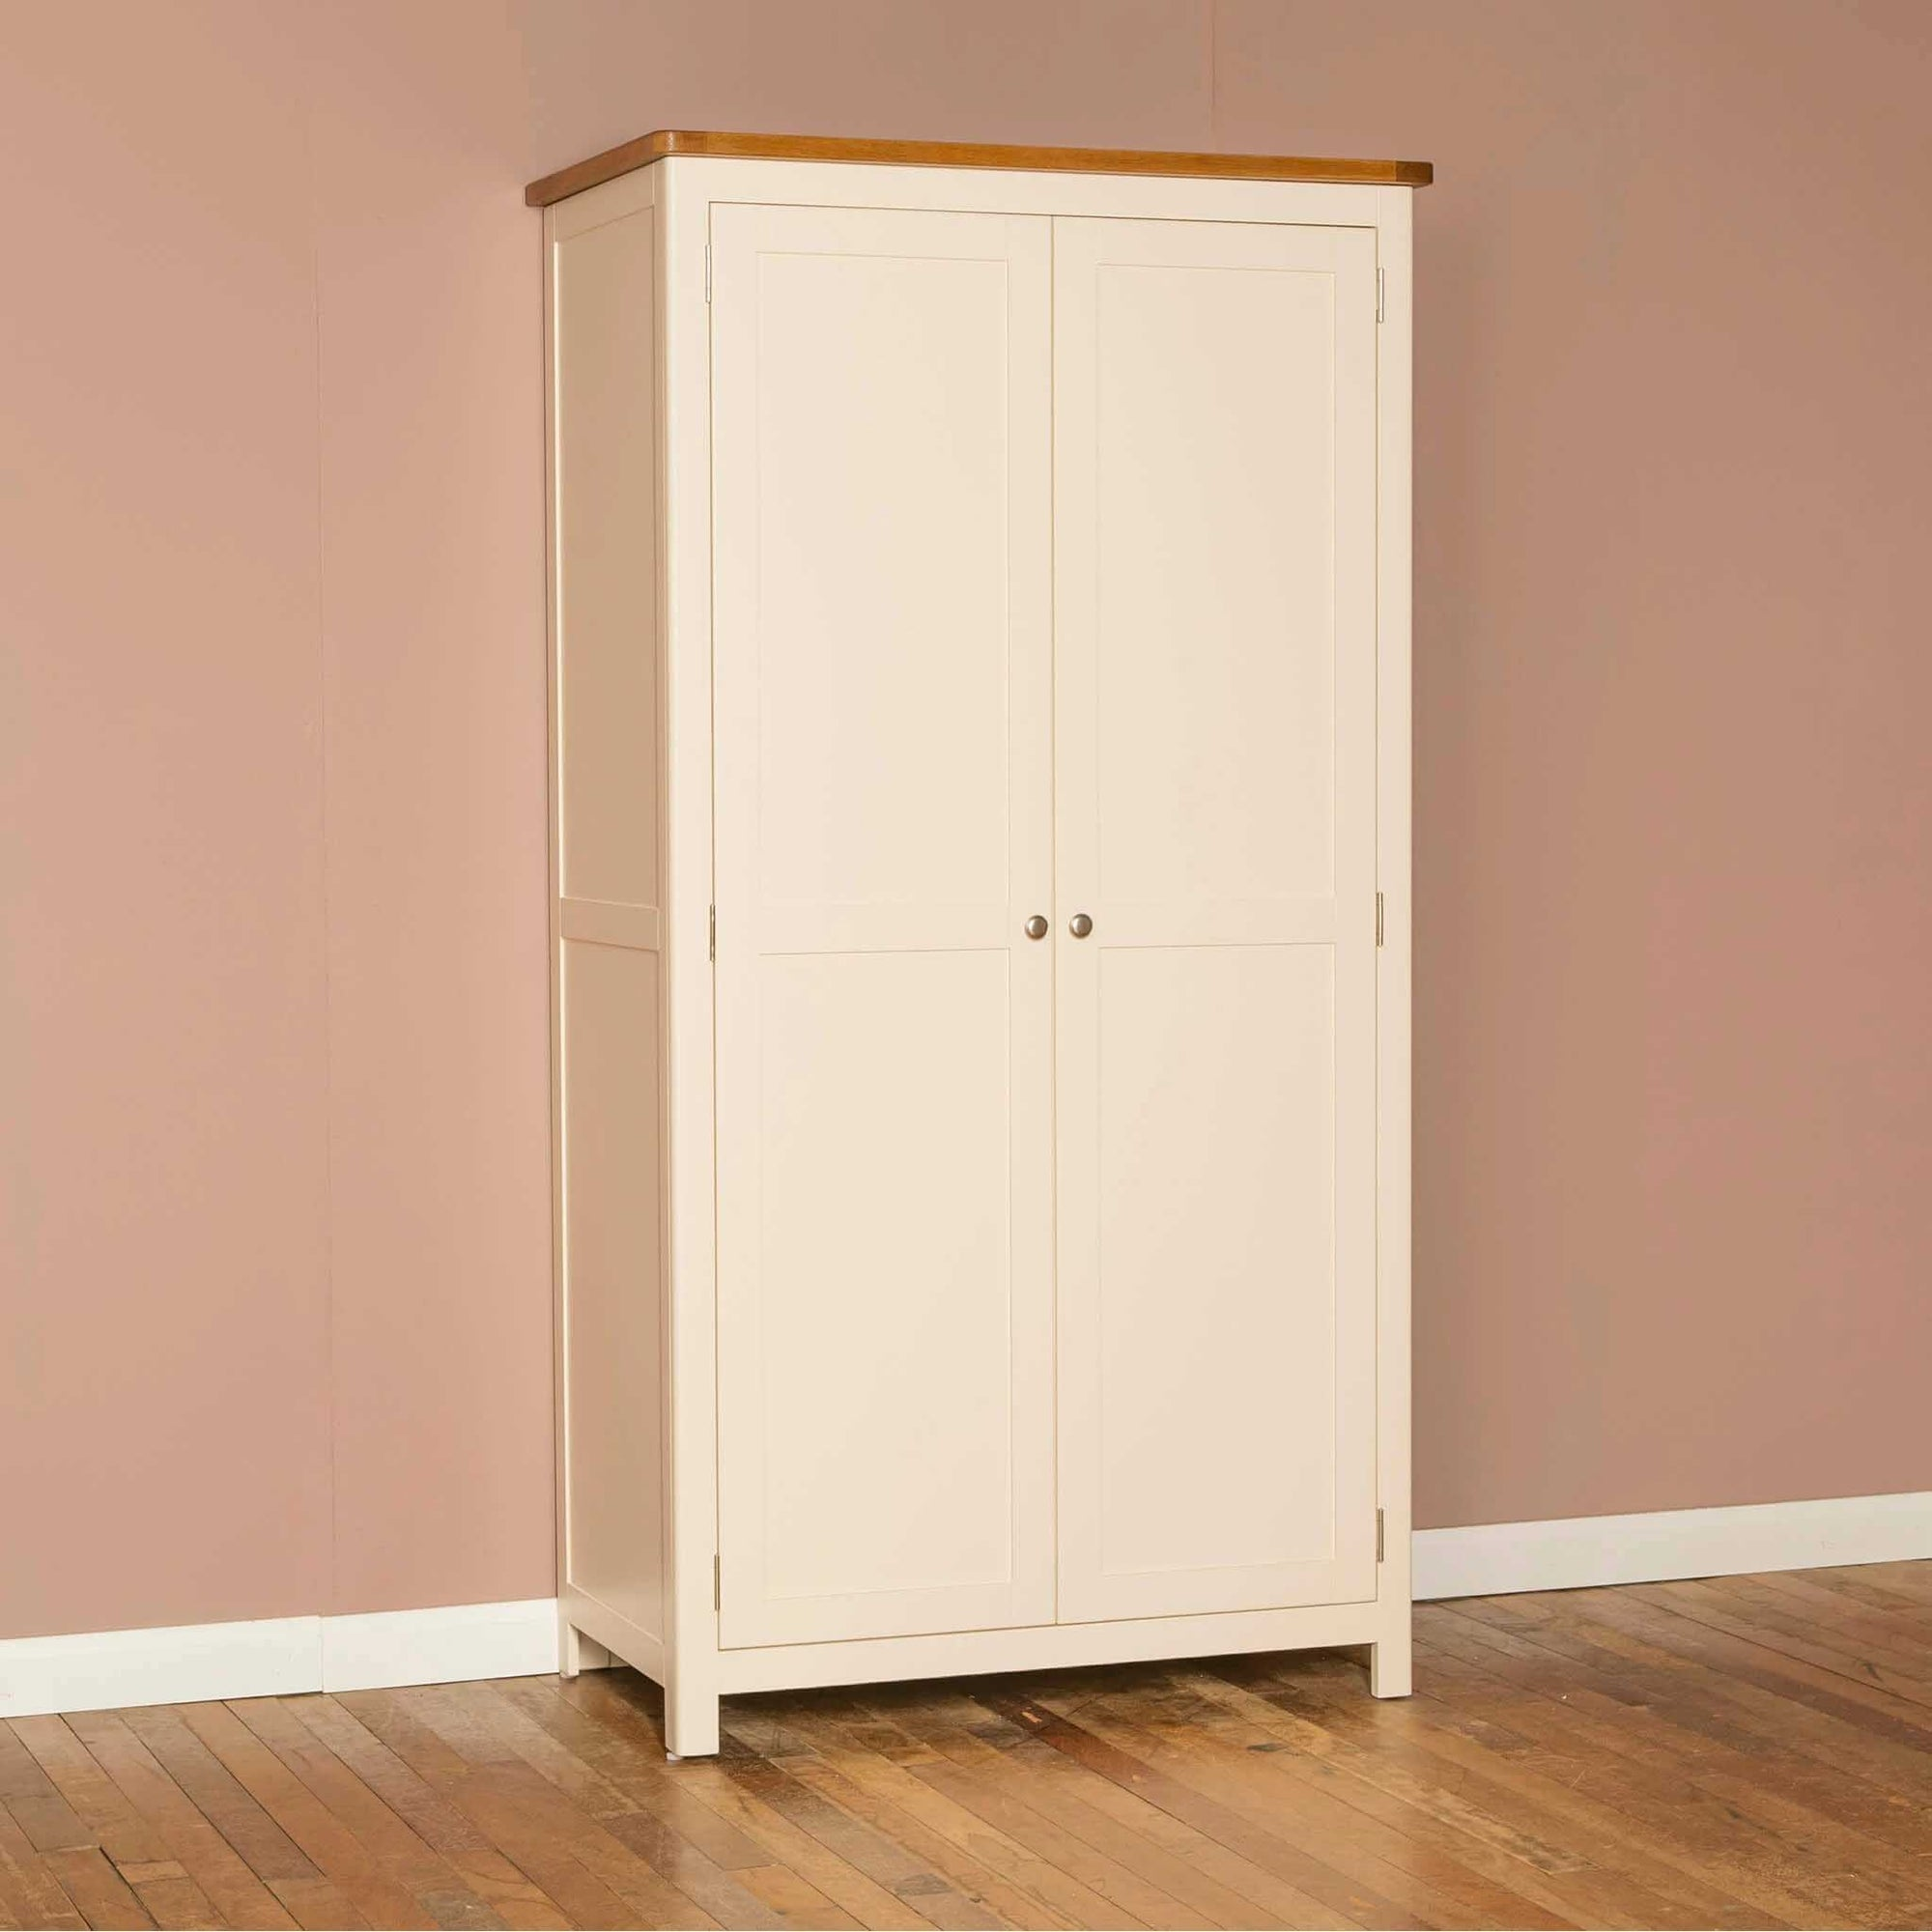 The Padstow Cream Wooden All Hanging Ladies Wardrobe with Oak Top from Roseland Furniture